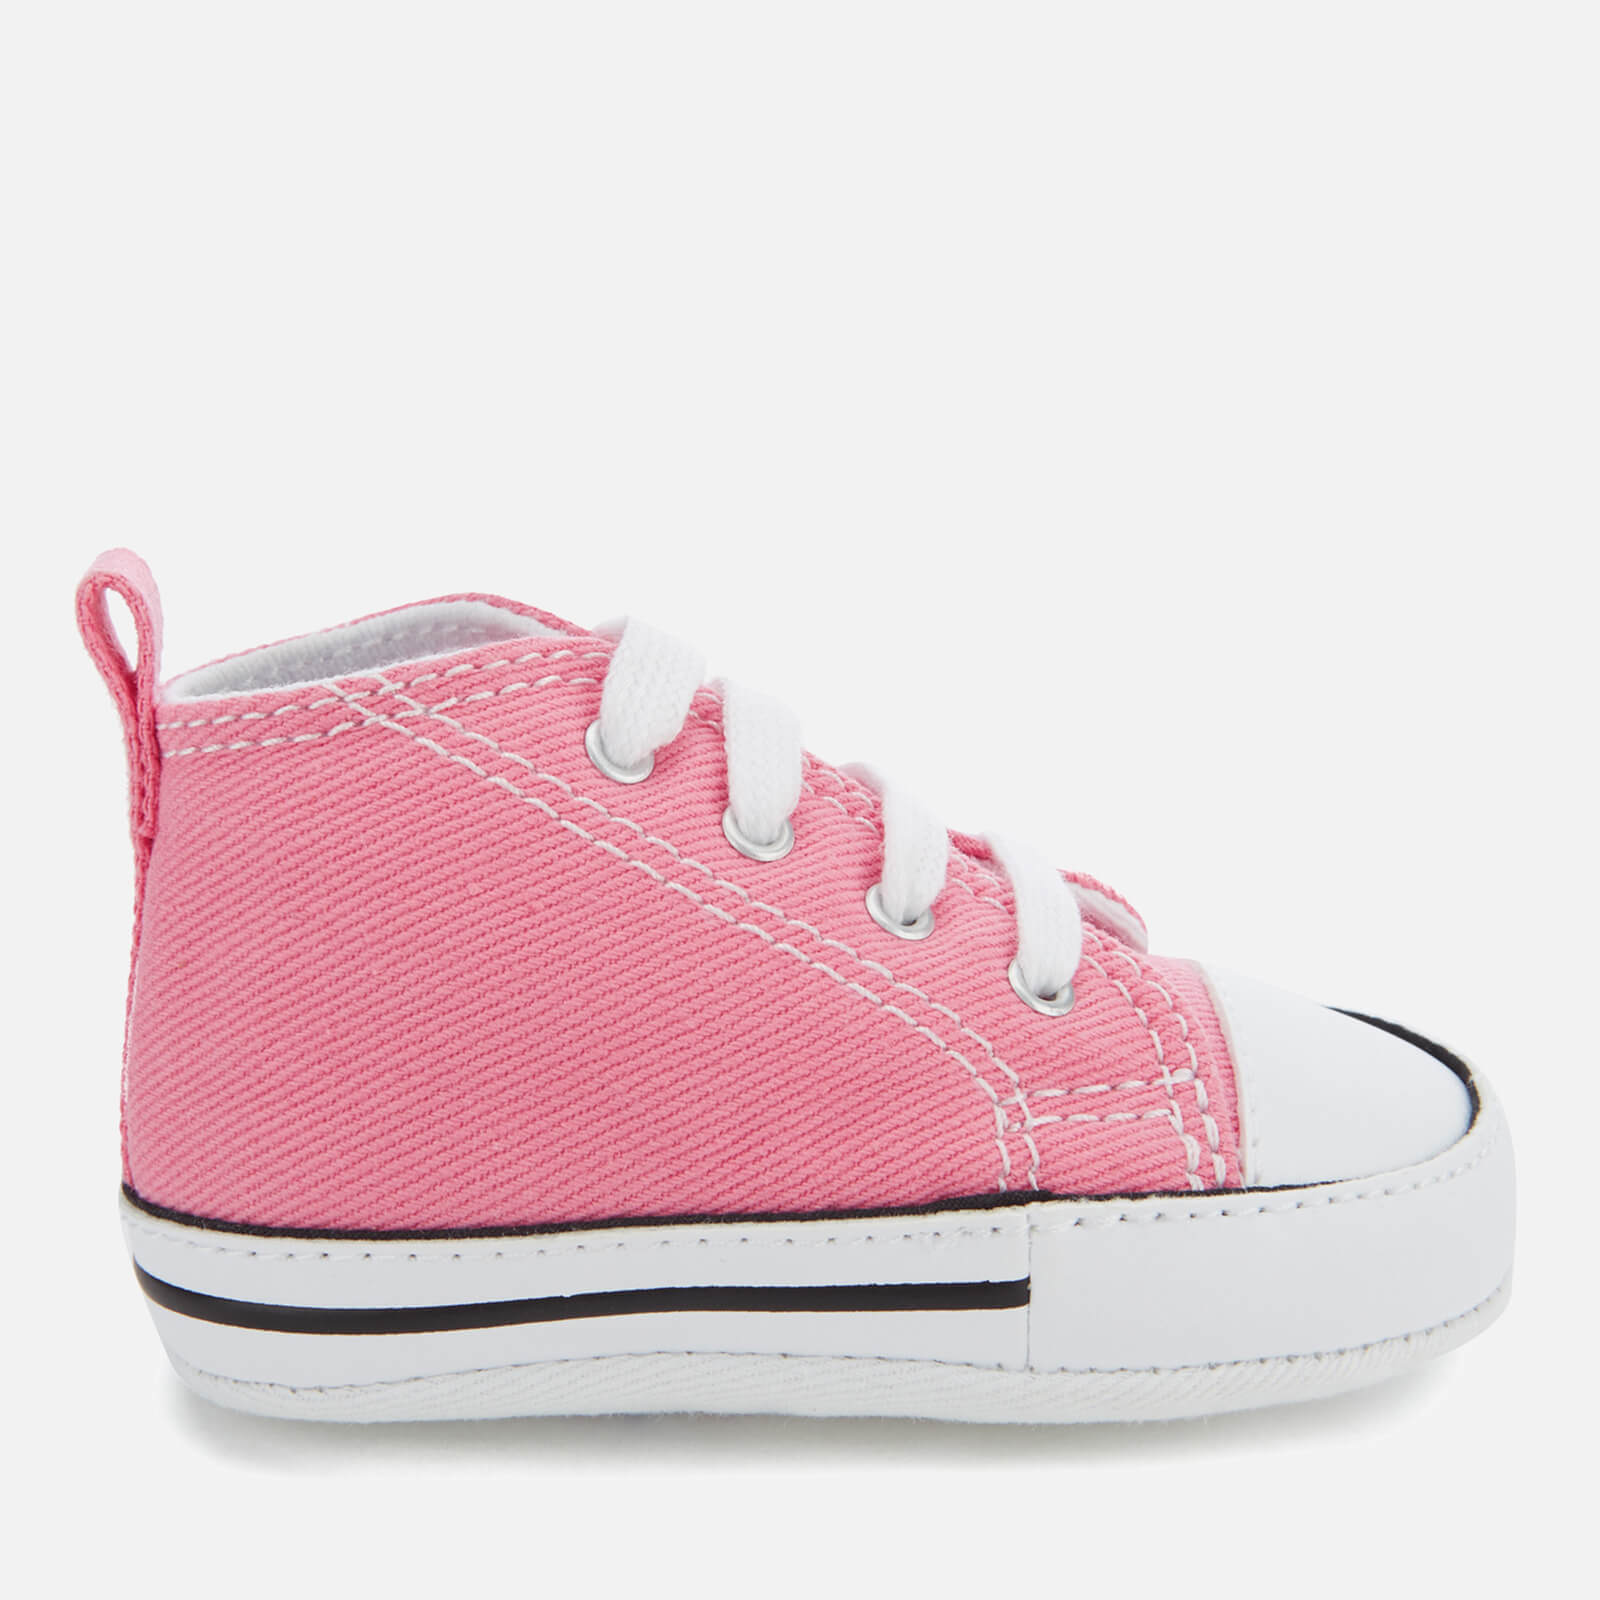 7ac12728cb Converse Babies Chuck Taylor First Star Hi-Top Trainers - Pink ...